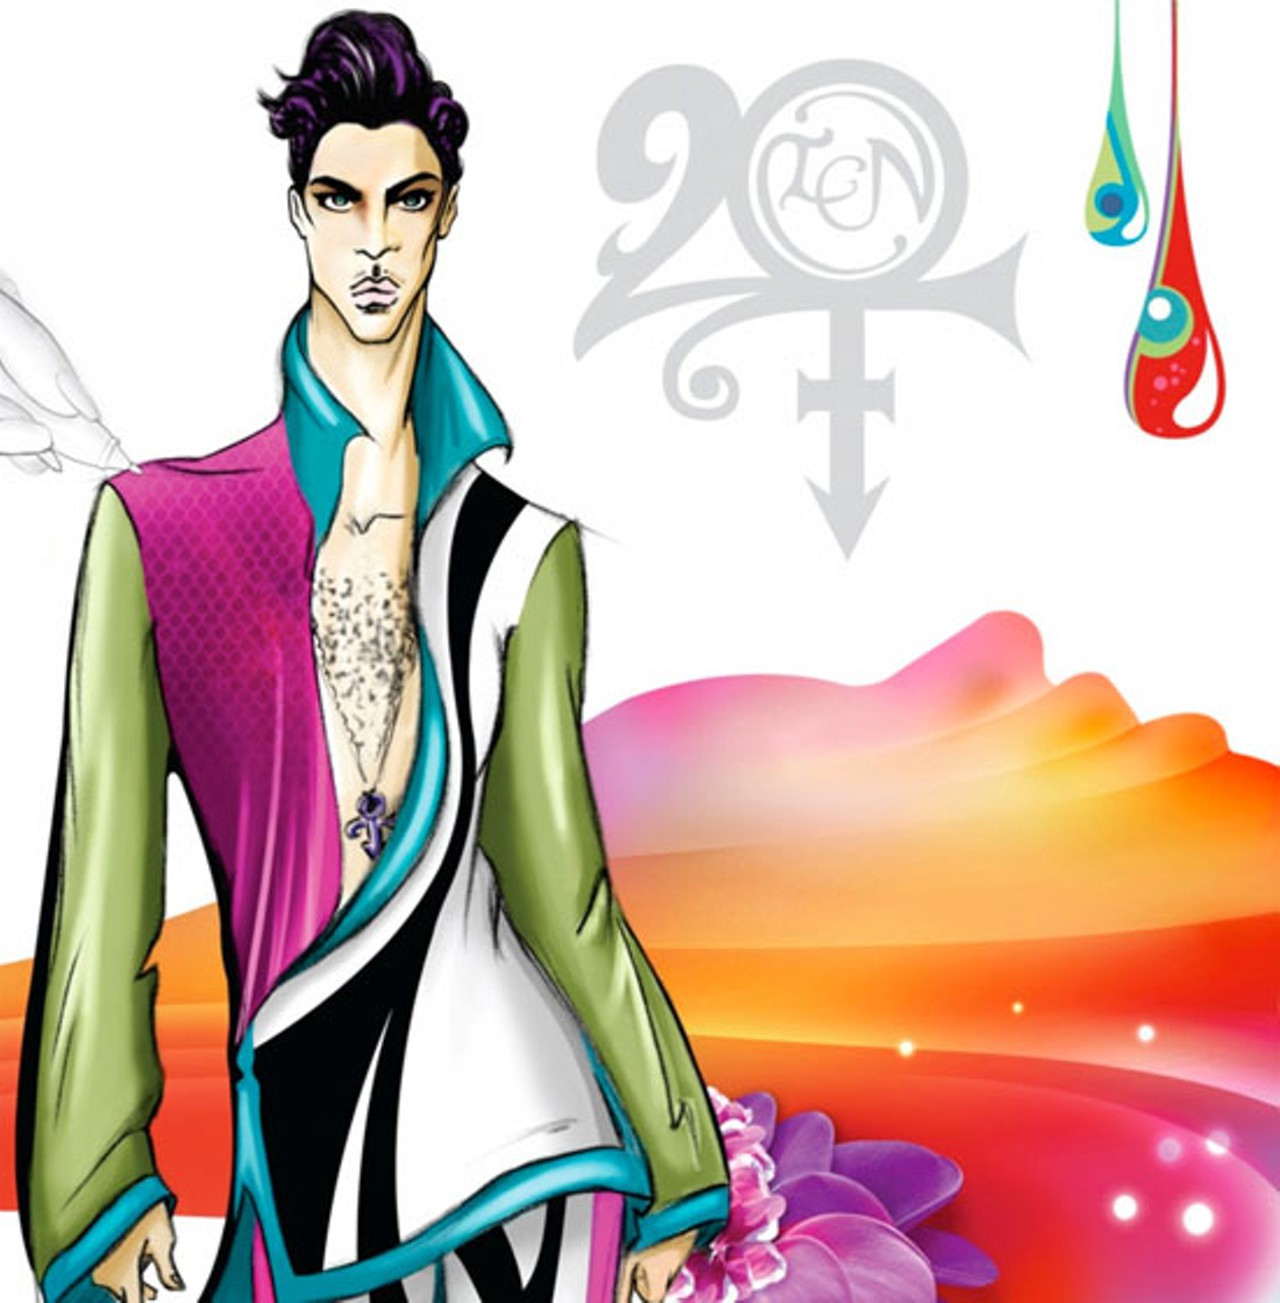 Prince: The Top 10 Official Releases You Can't Buy  (Updated